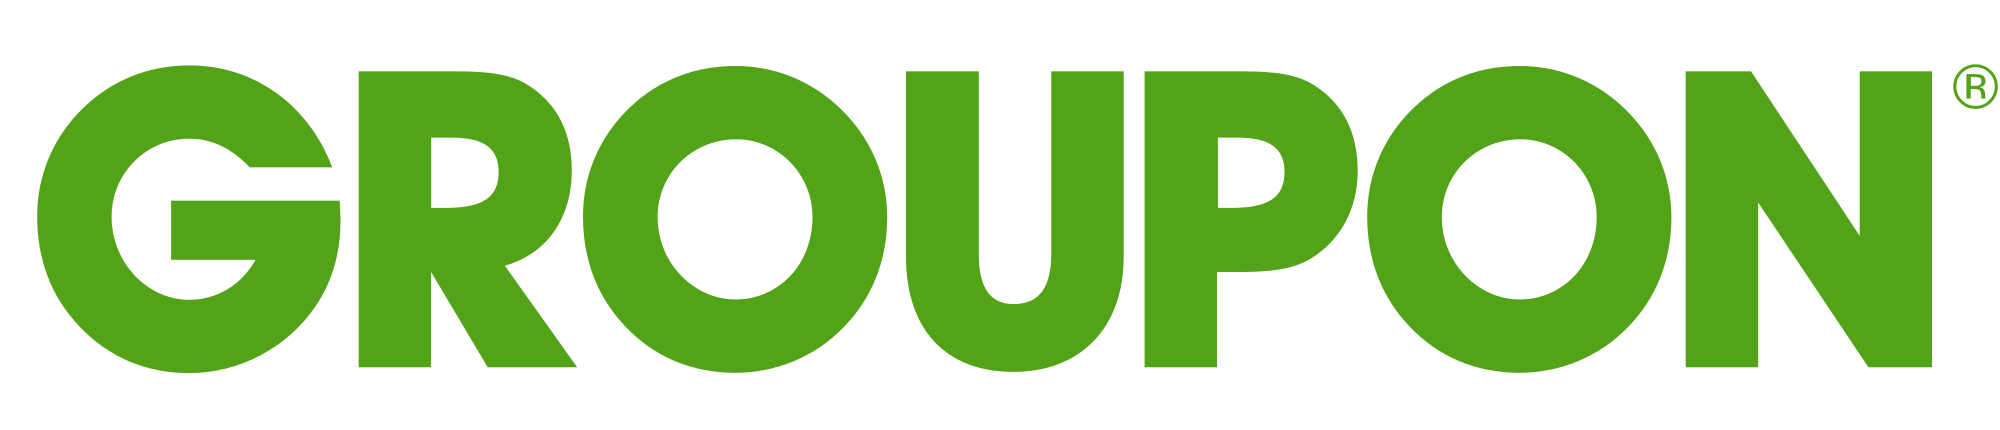 Groupon continues strong growth, with 115M subscribers